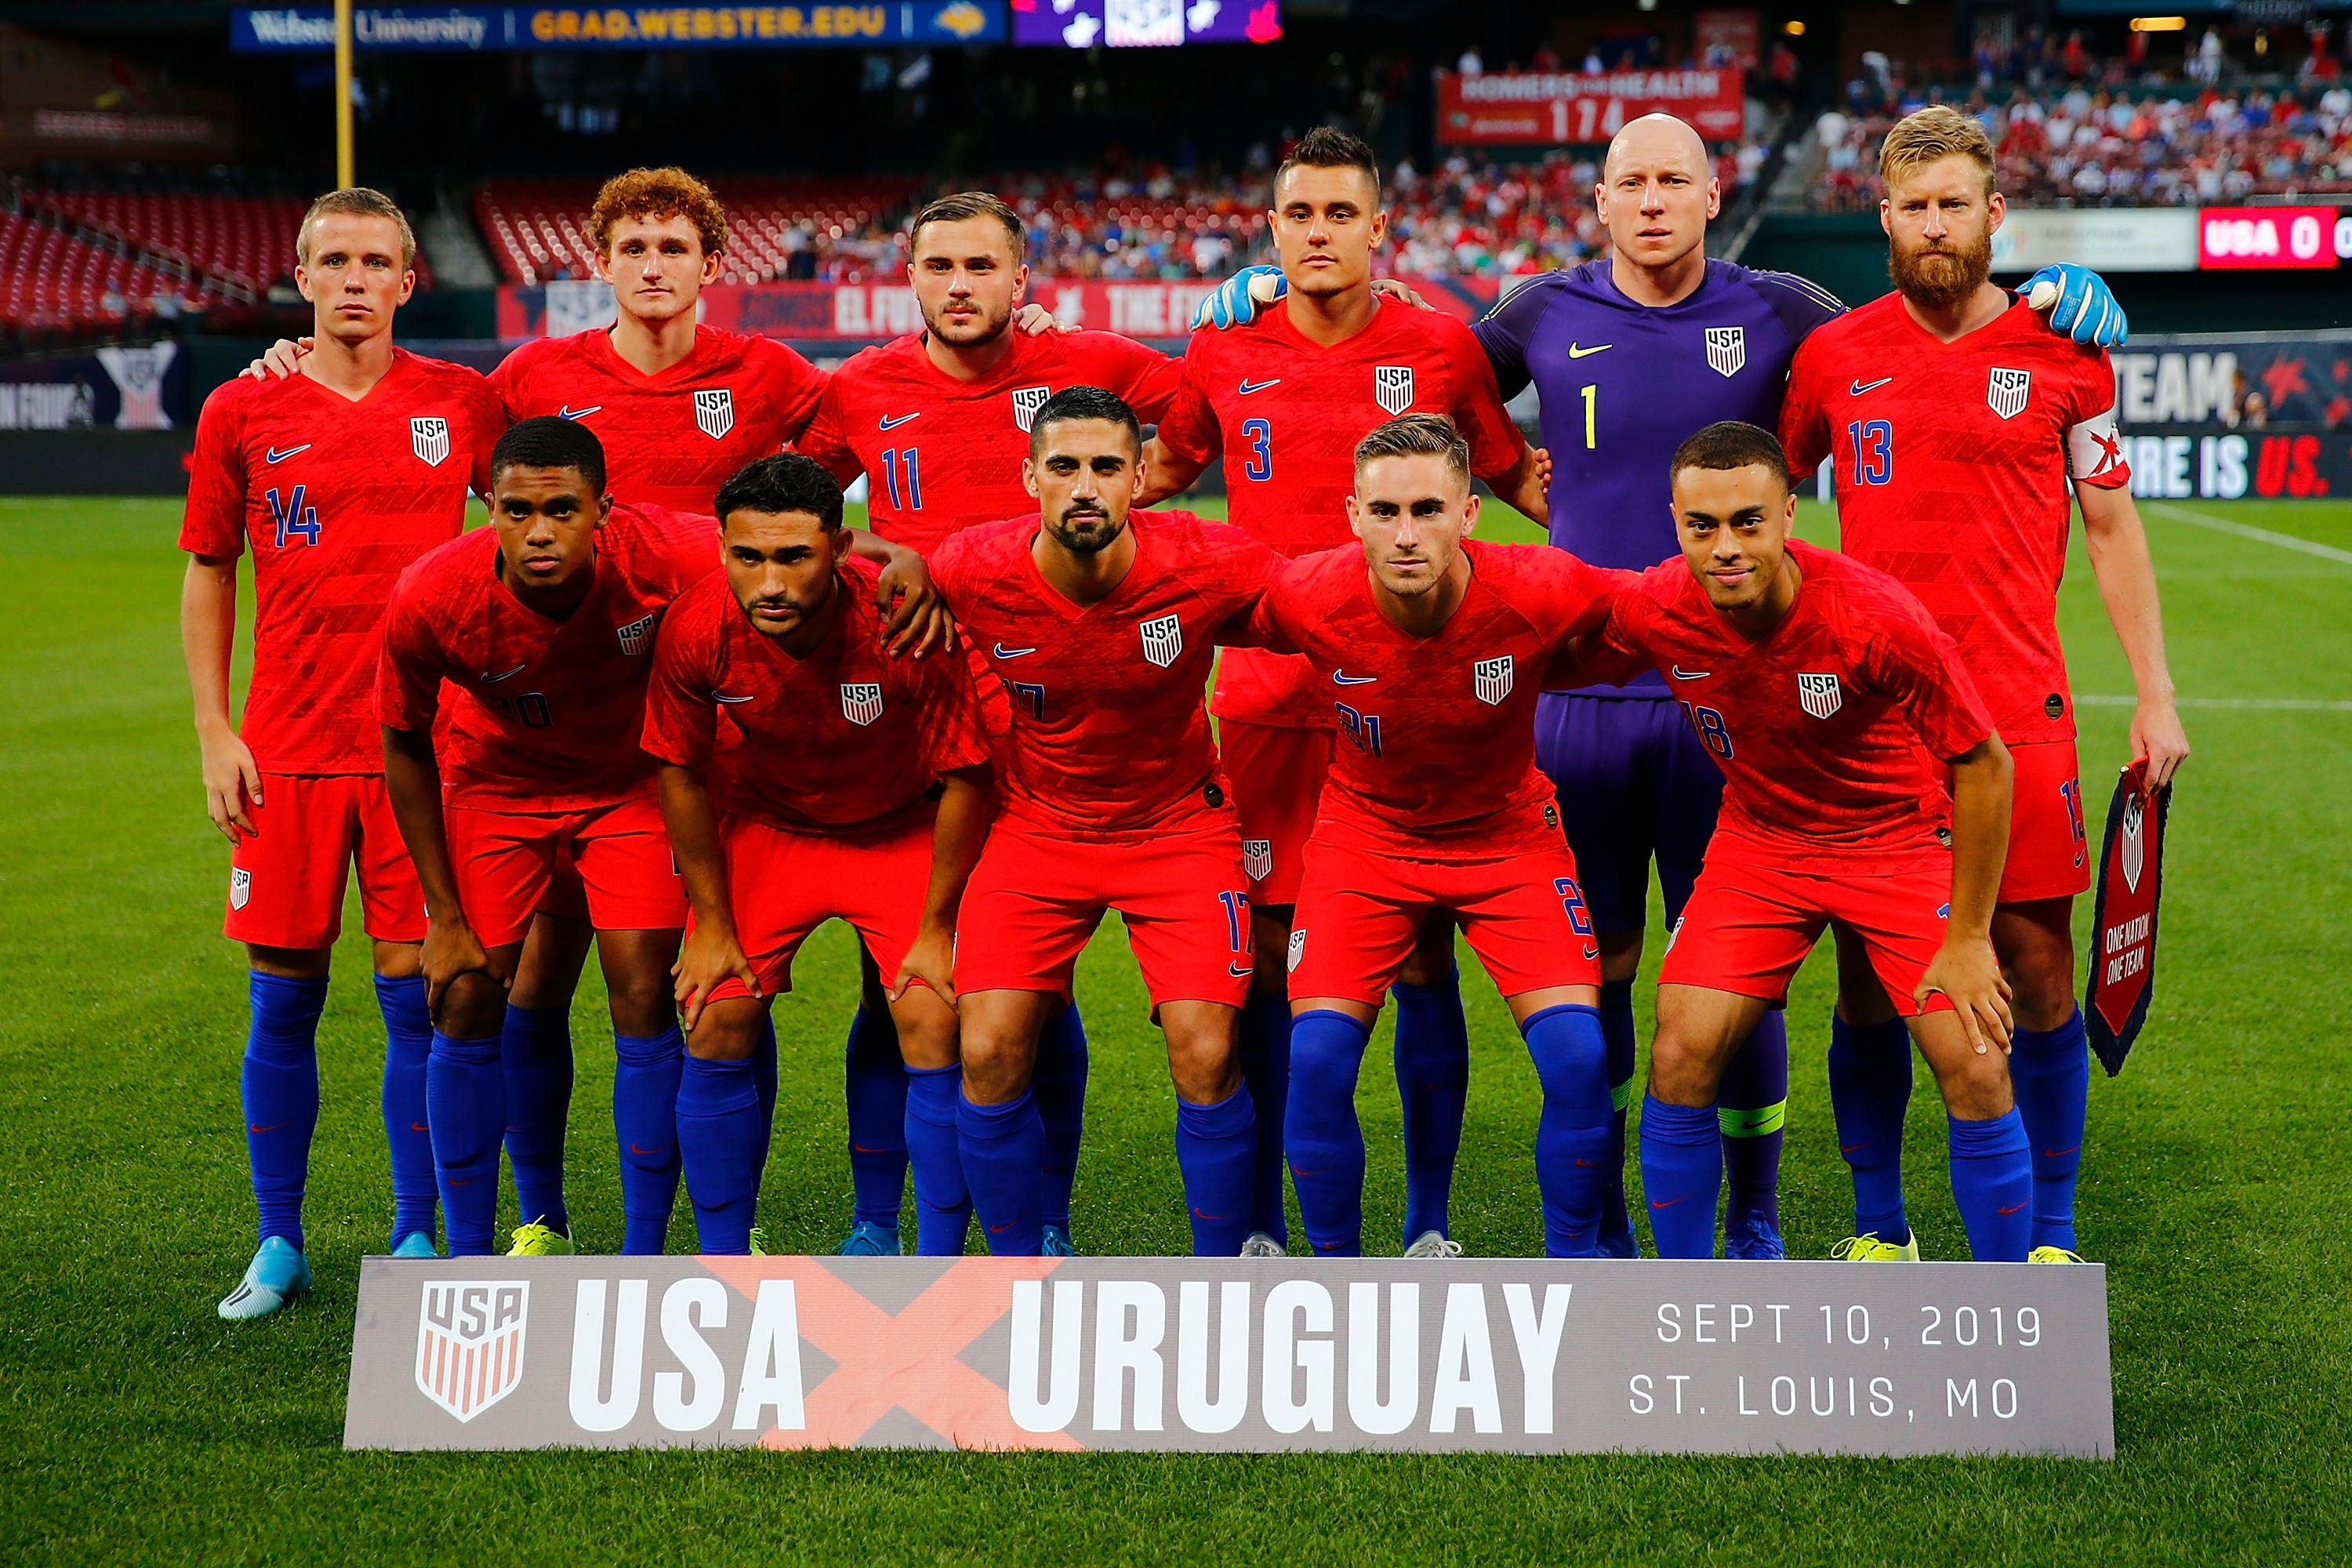 USMNT poses for photo